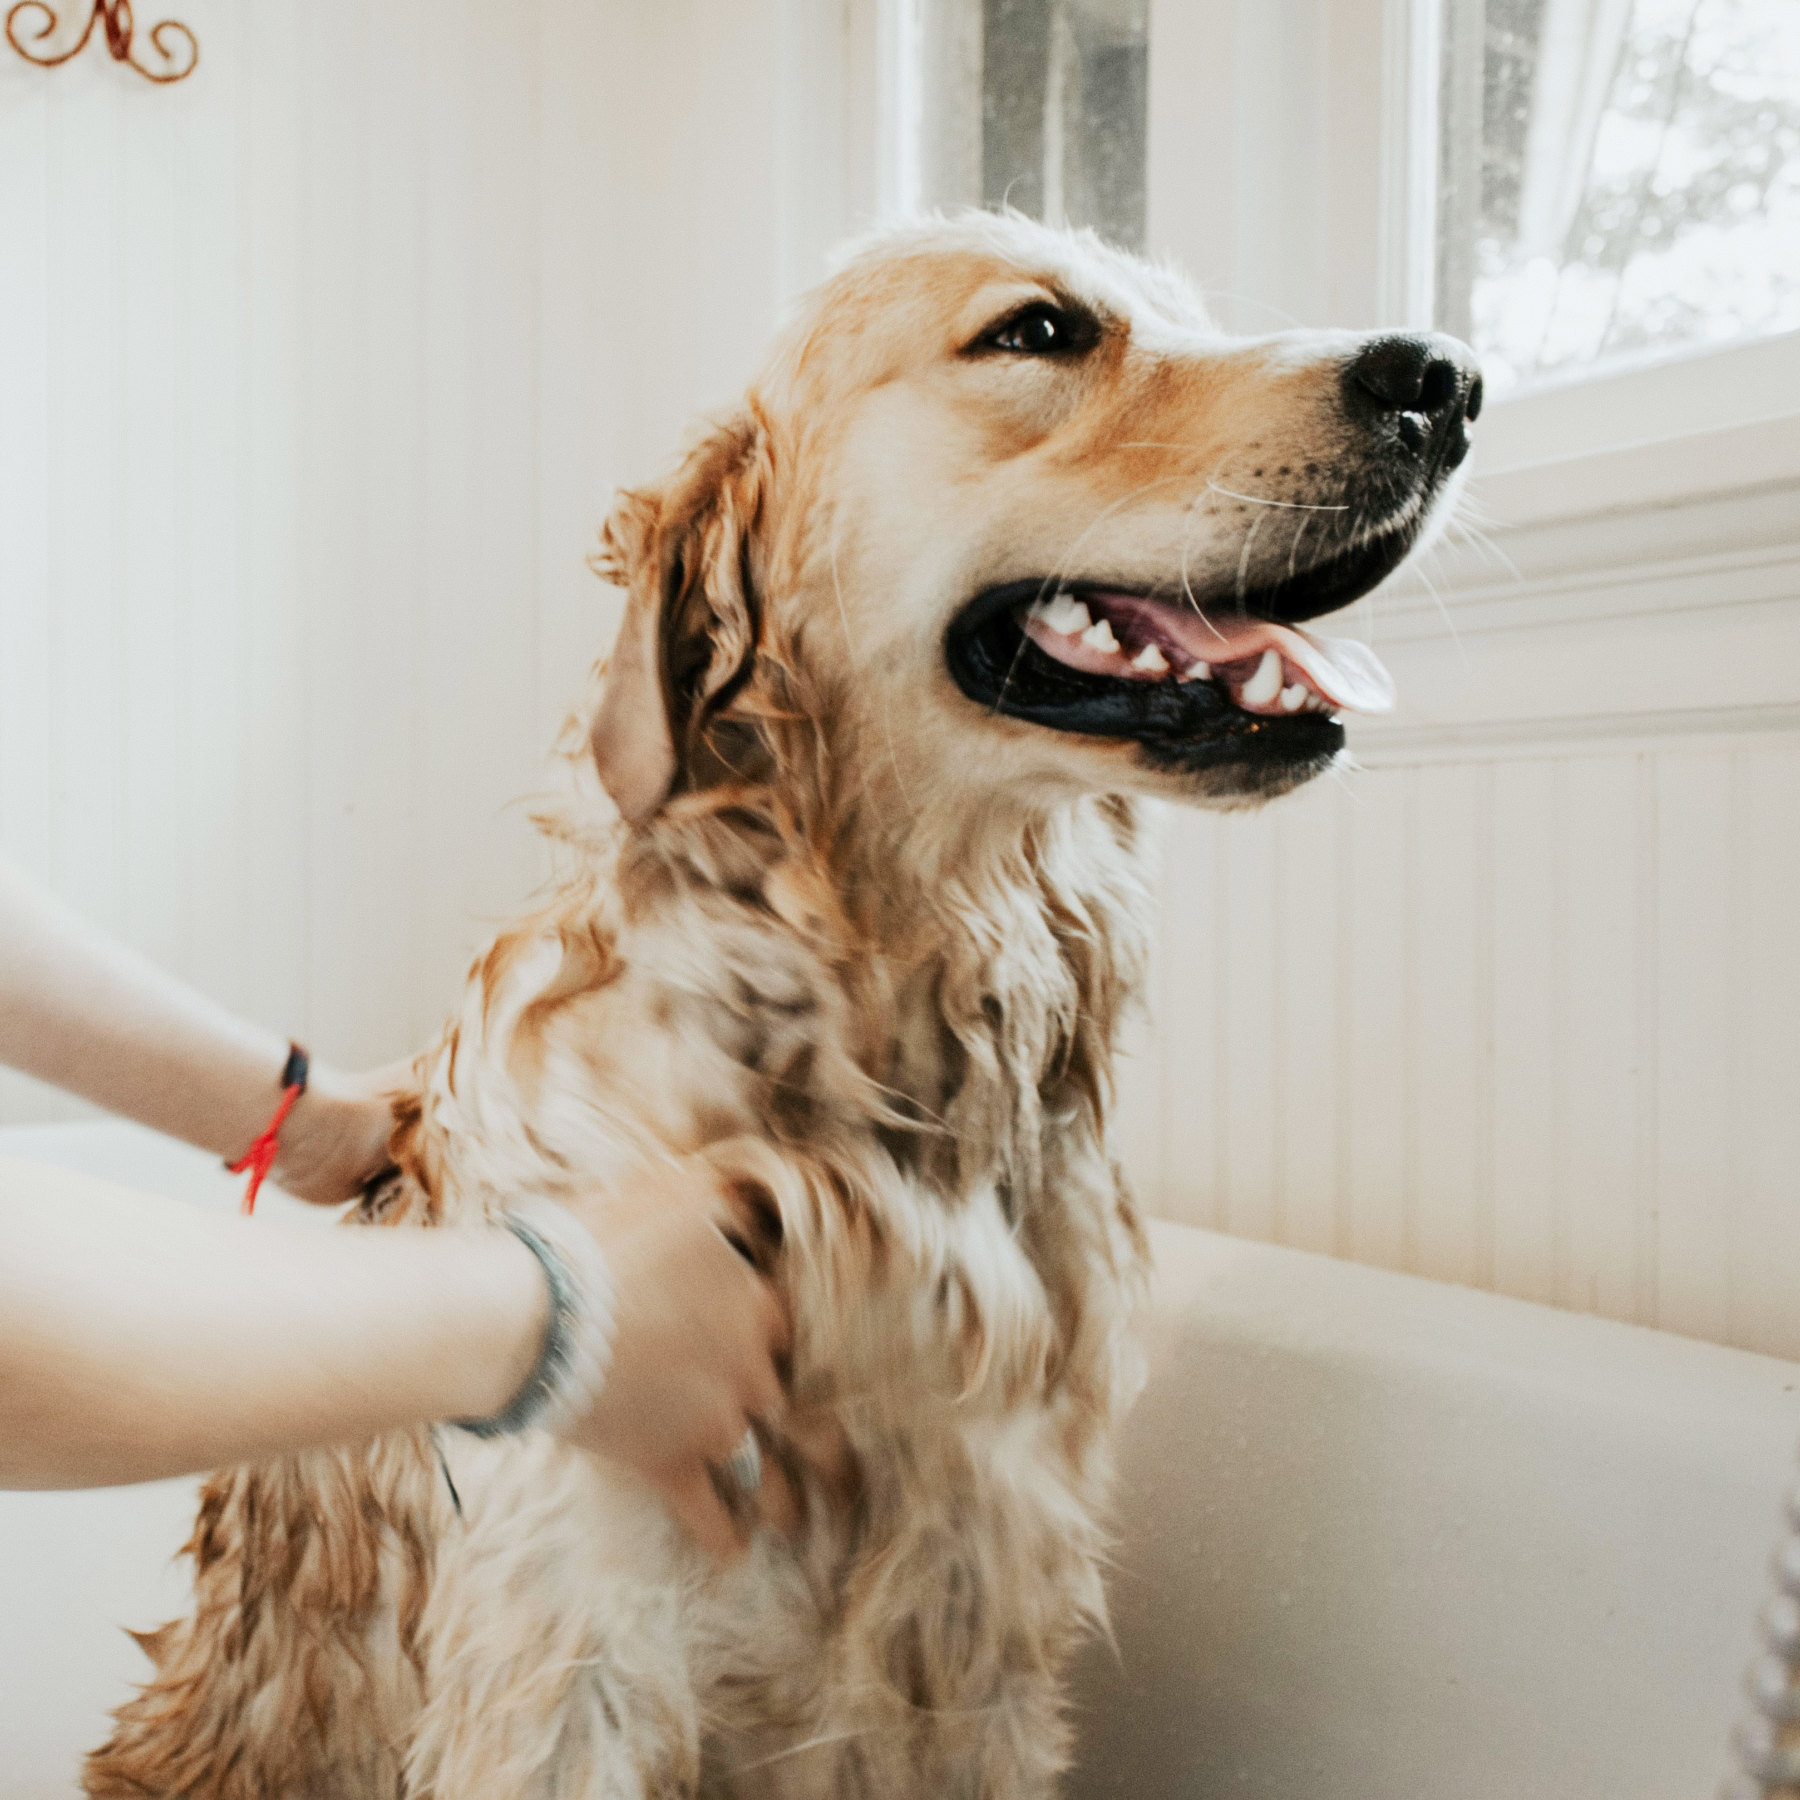 A yellow dog being given a bath